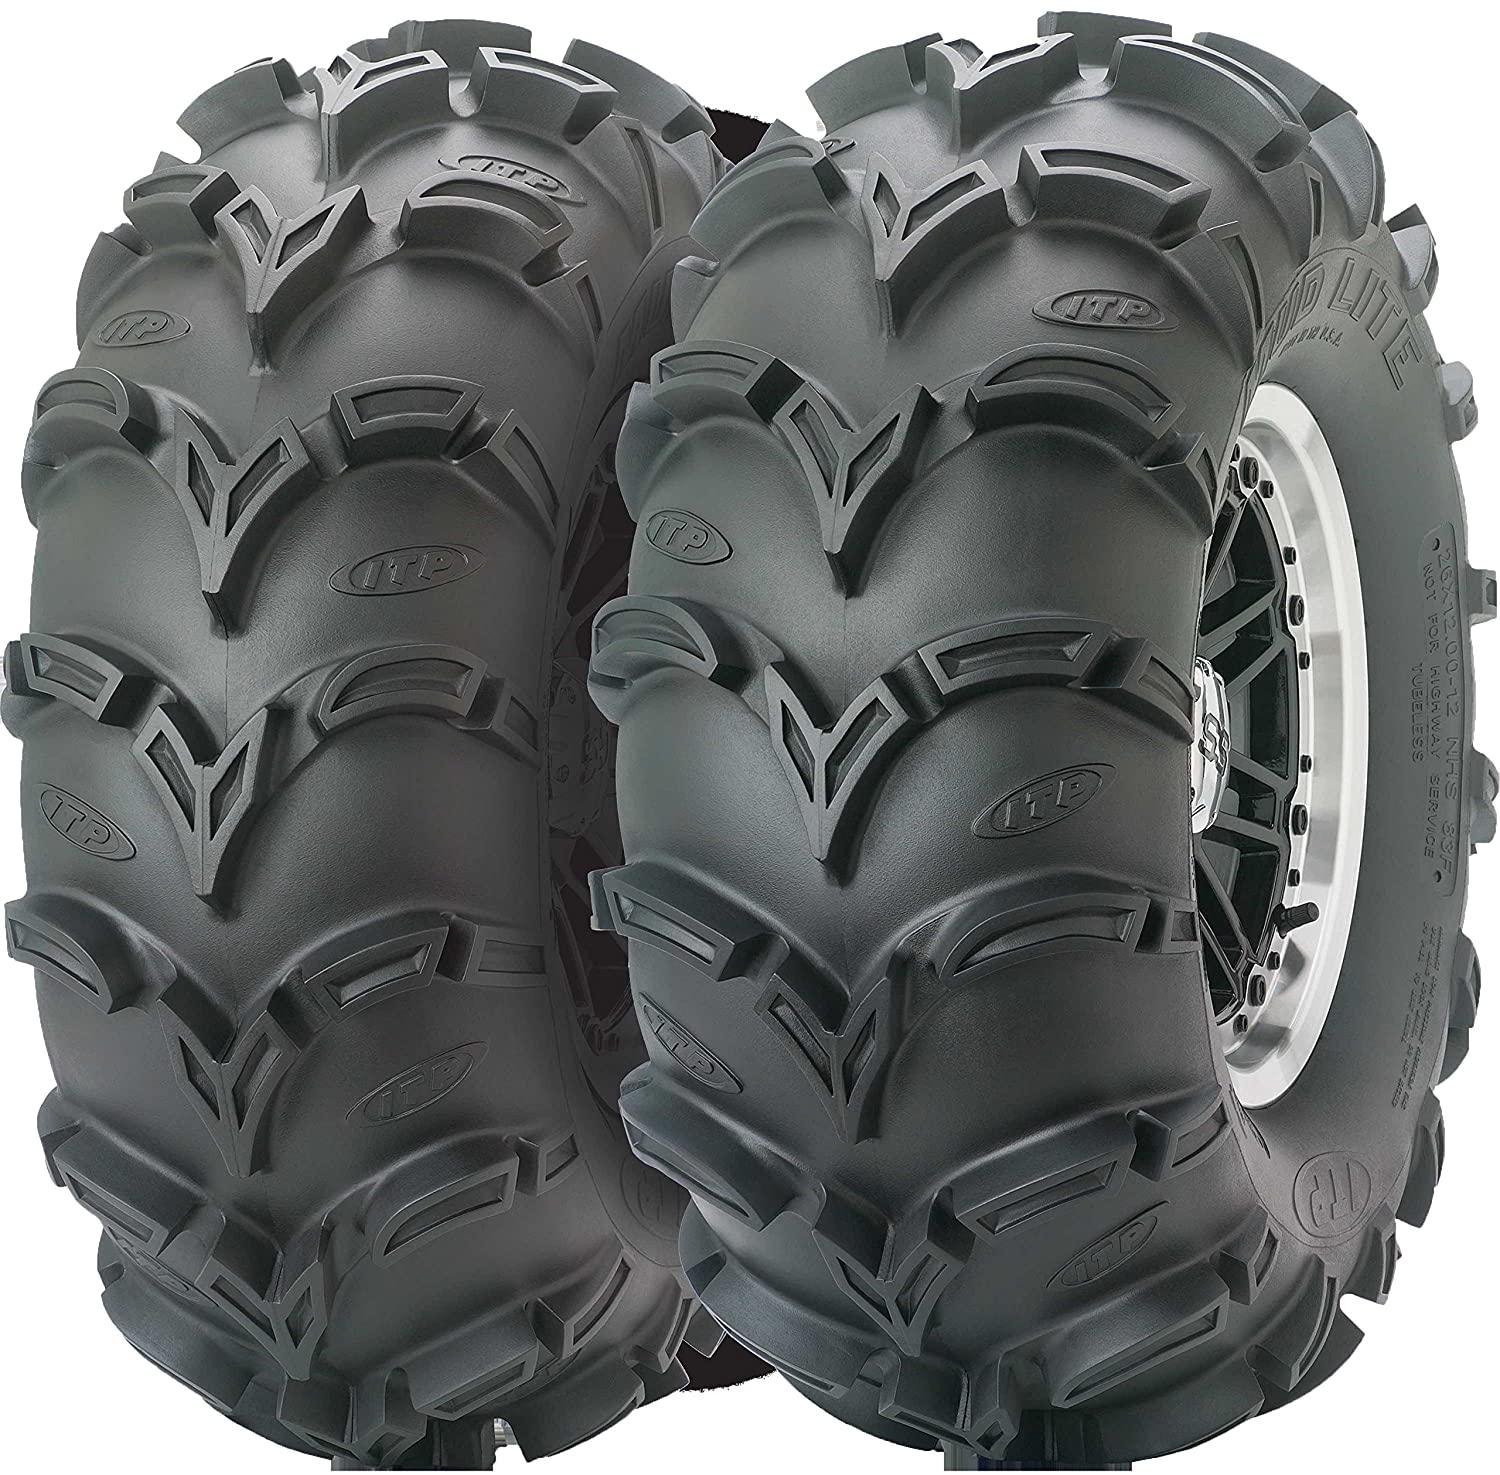 ITP Mud Lite AT Mud Terrain ATV Tire 24x9-11